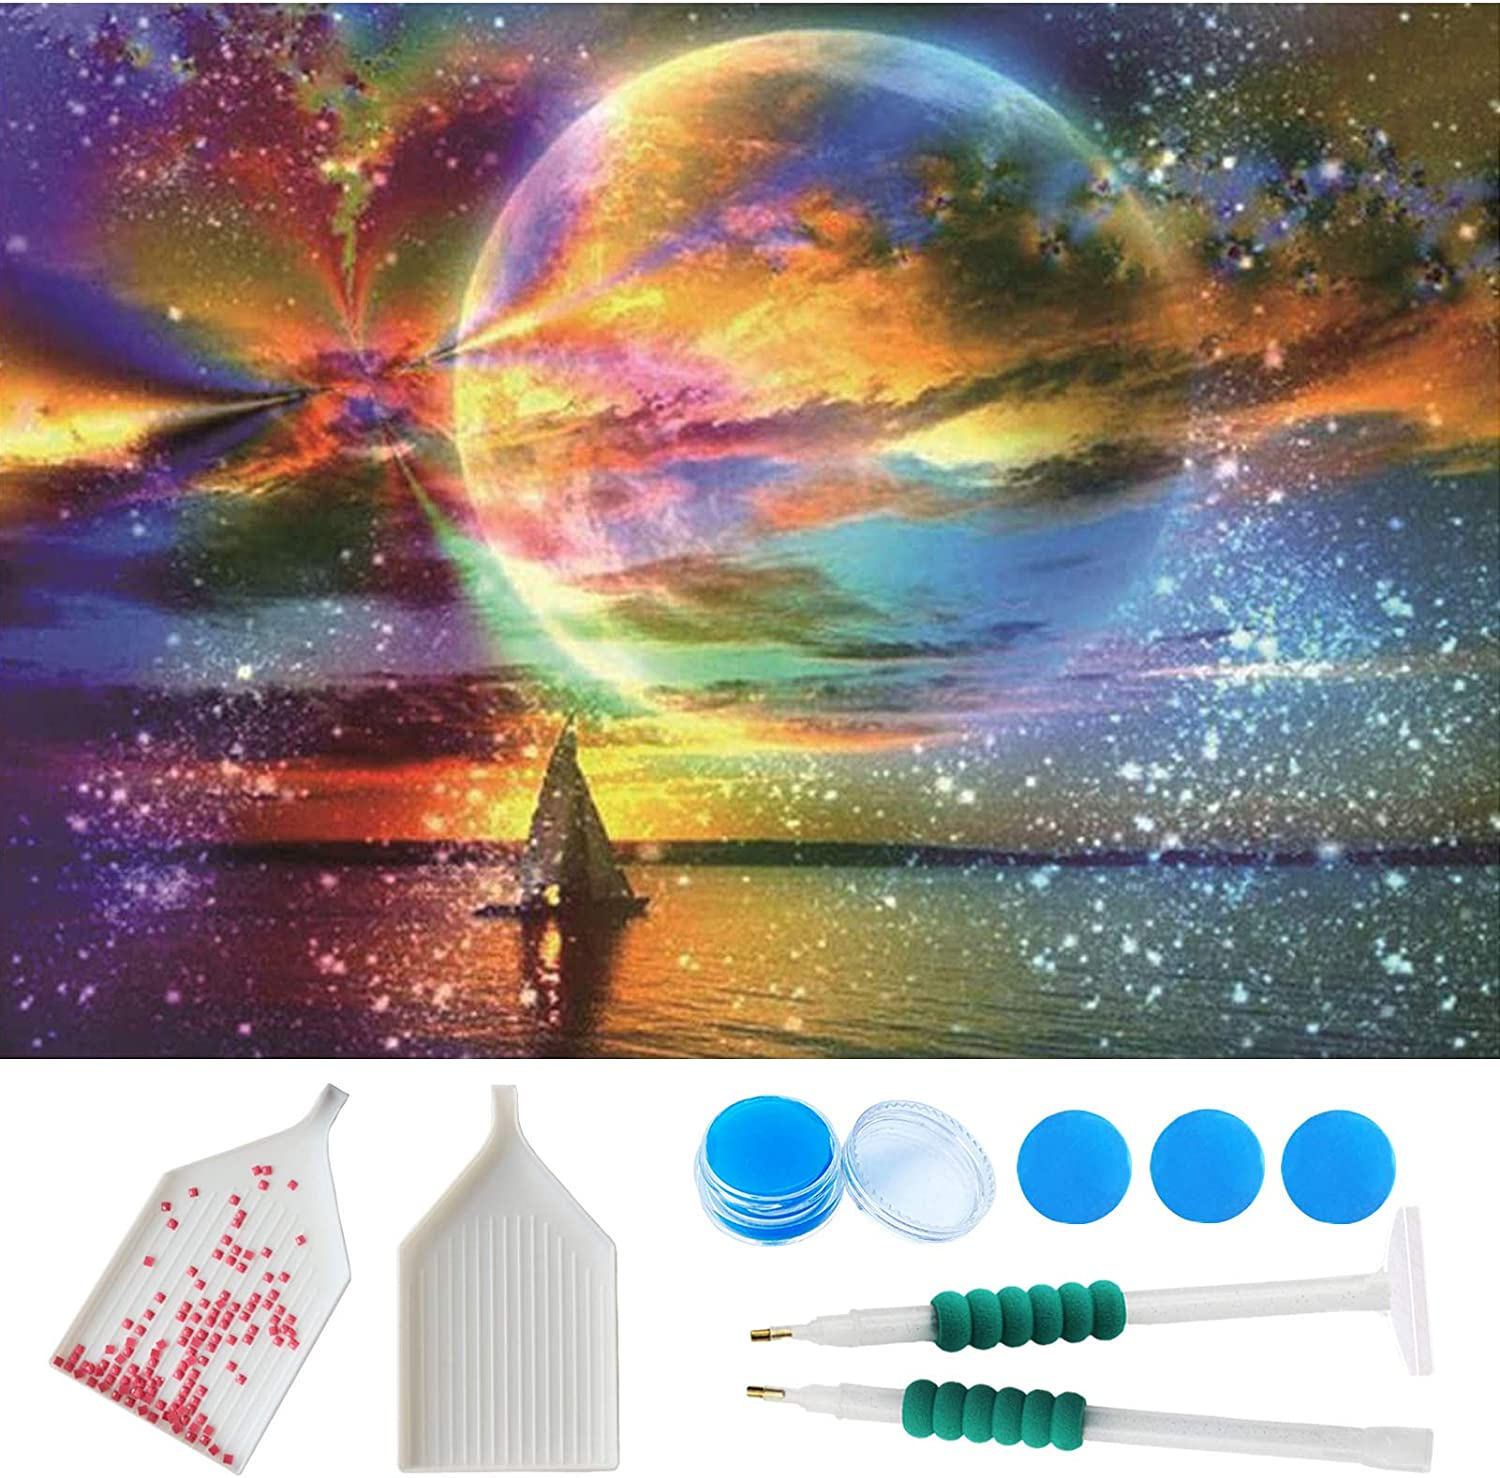 5d Diamond Painting Kits overseas for Adults La Drill Full 15.8x23.6 Inch OFFicial mail order